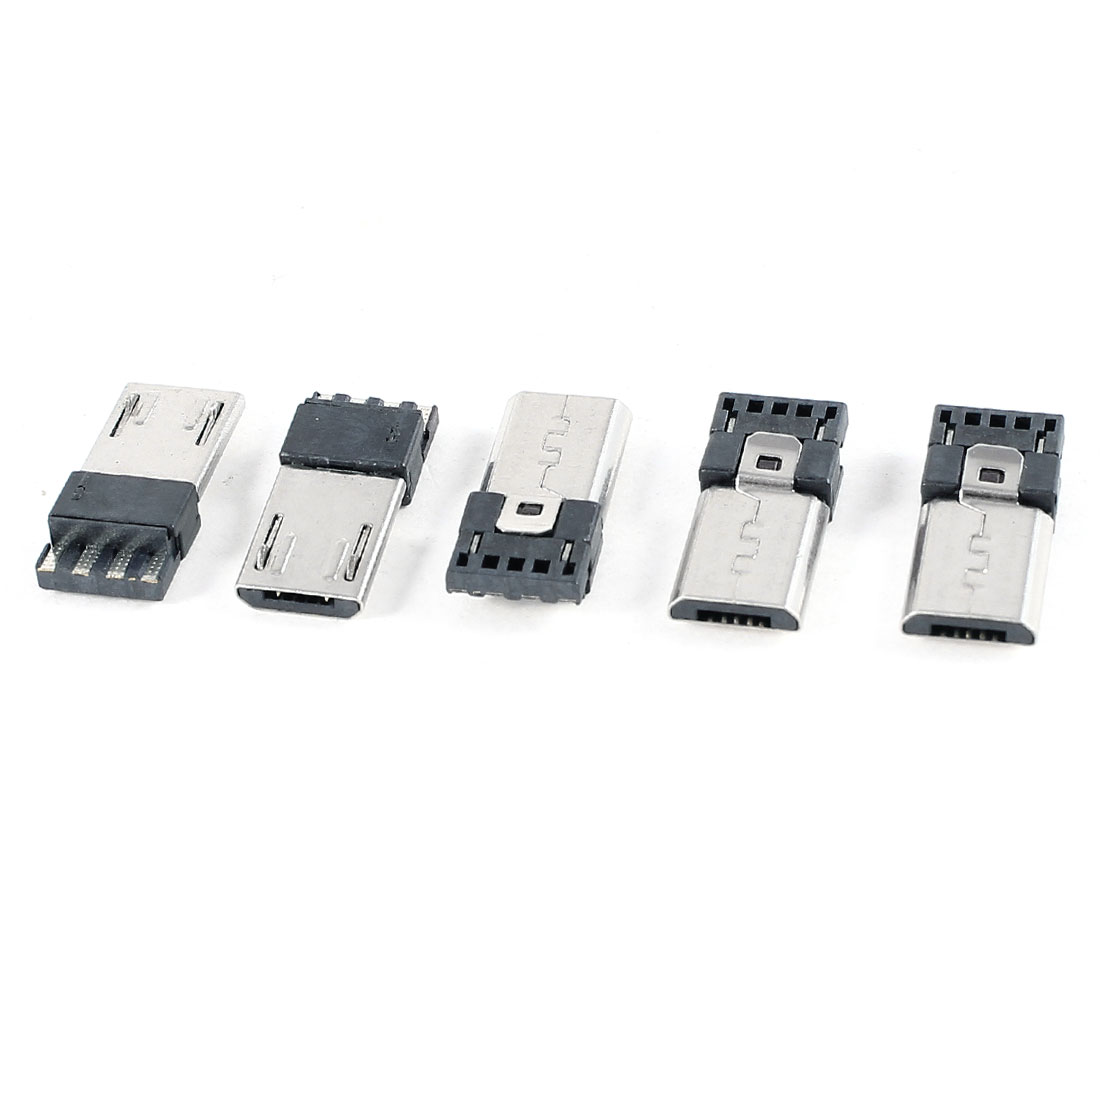 5pcs USB Micro Type-B 5pin Male Jack Connector Solder PCB Mount Socket